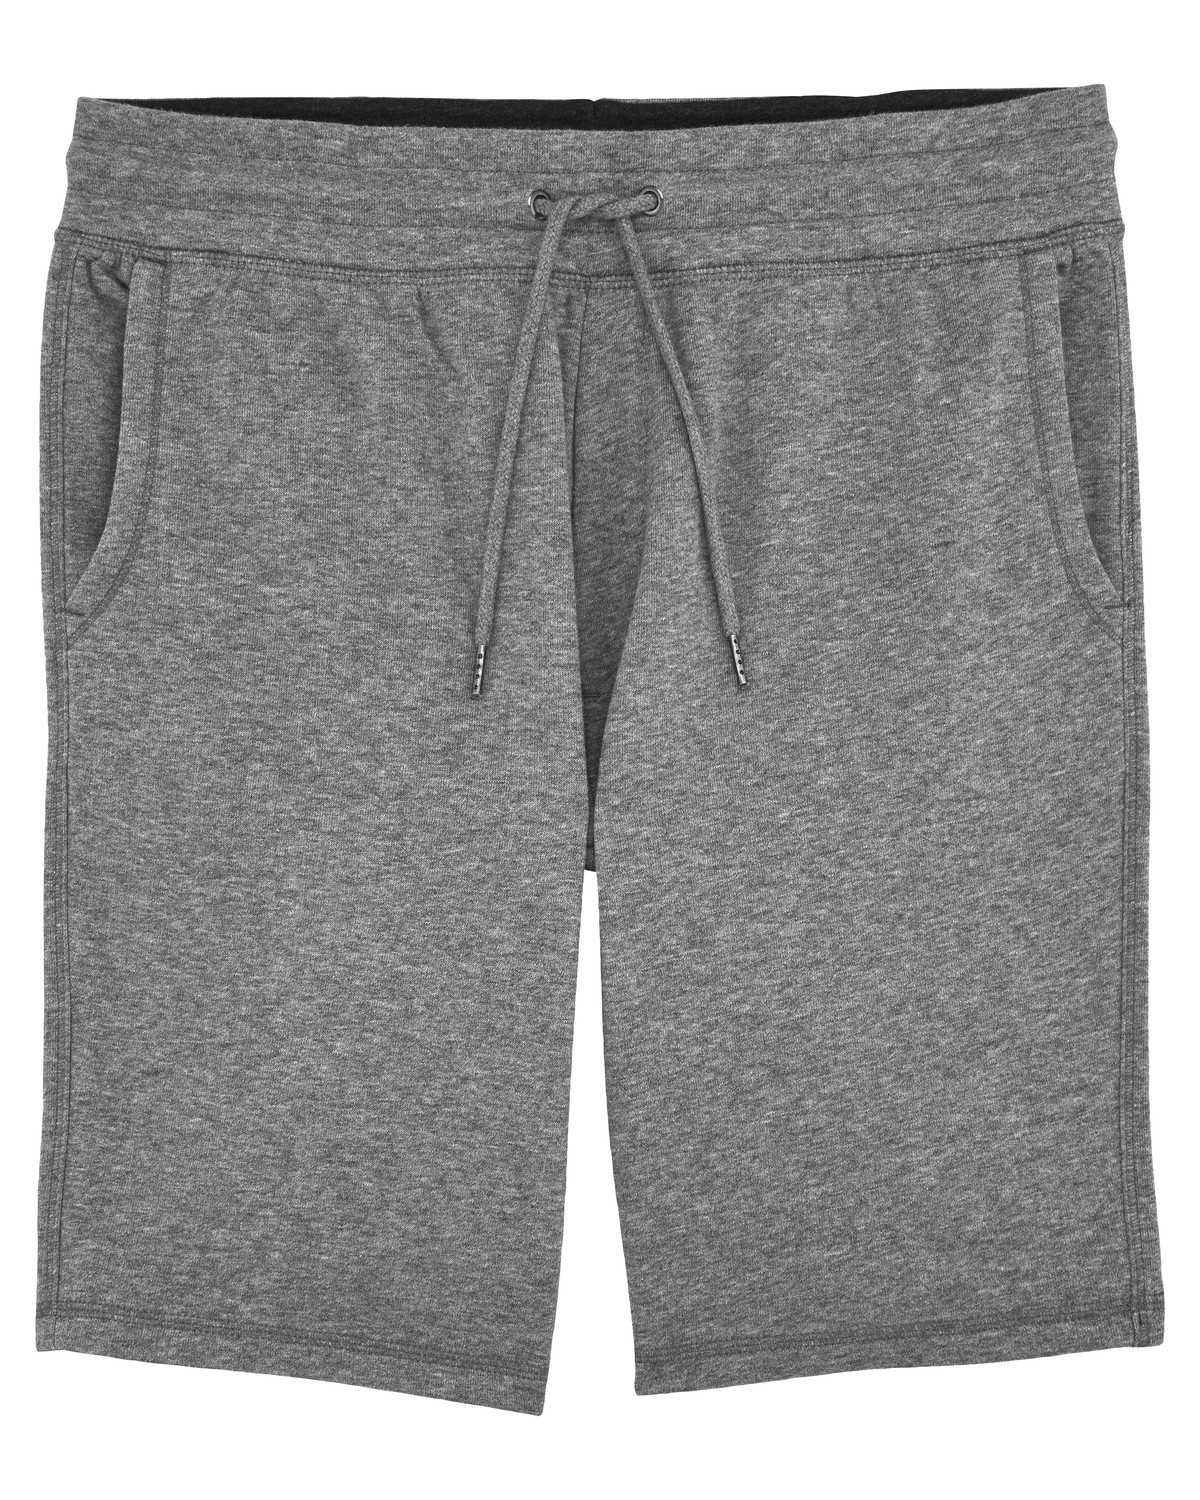 Short jogging homme - 81-1063-3